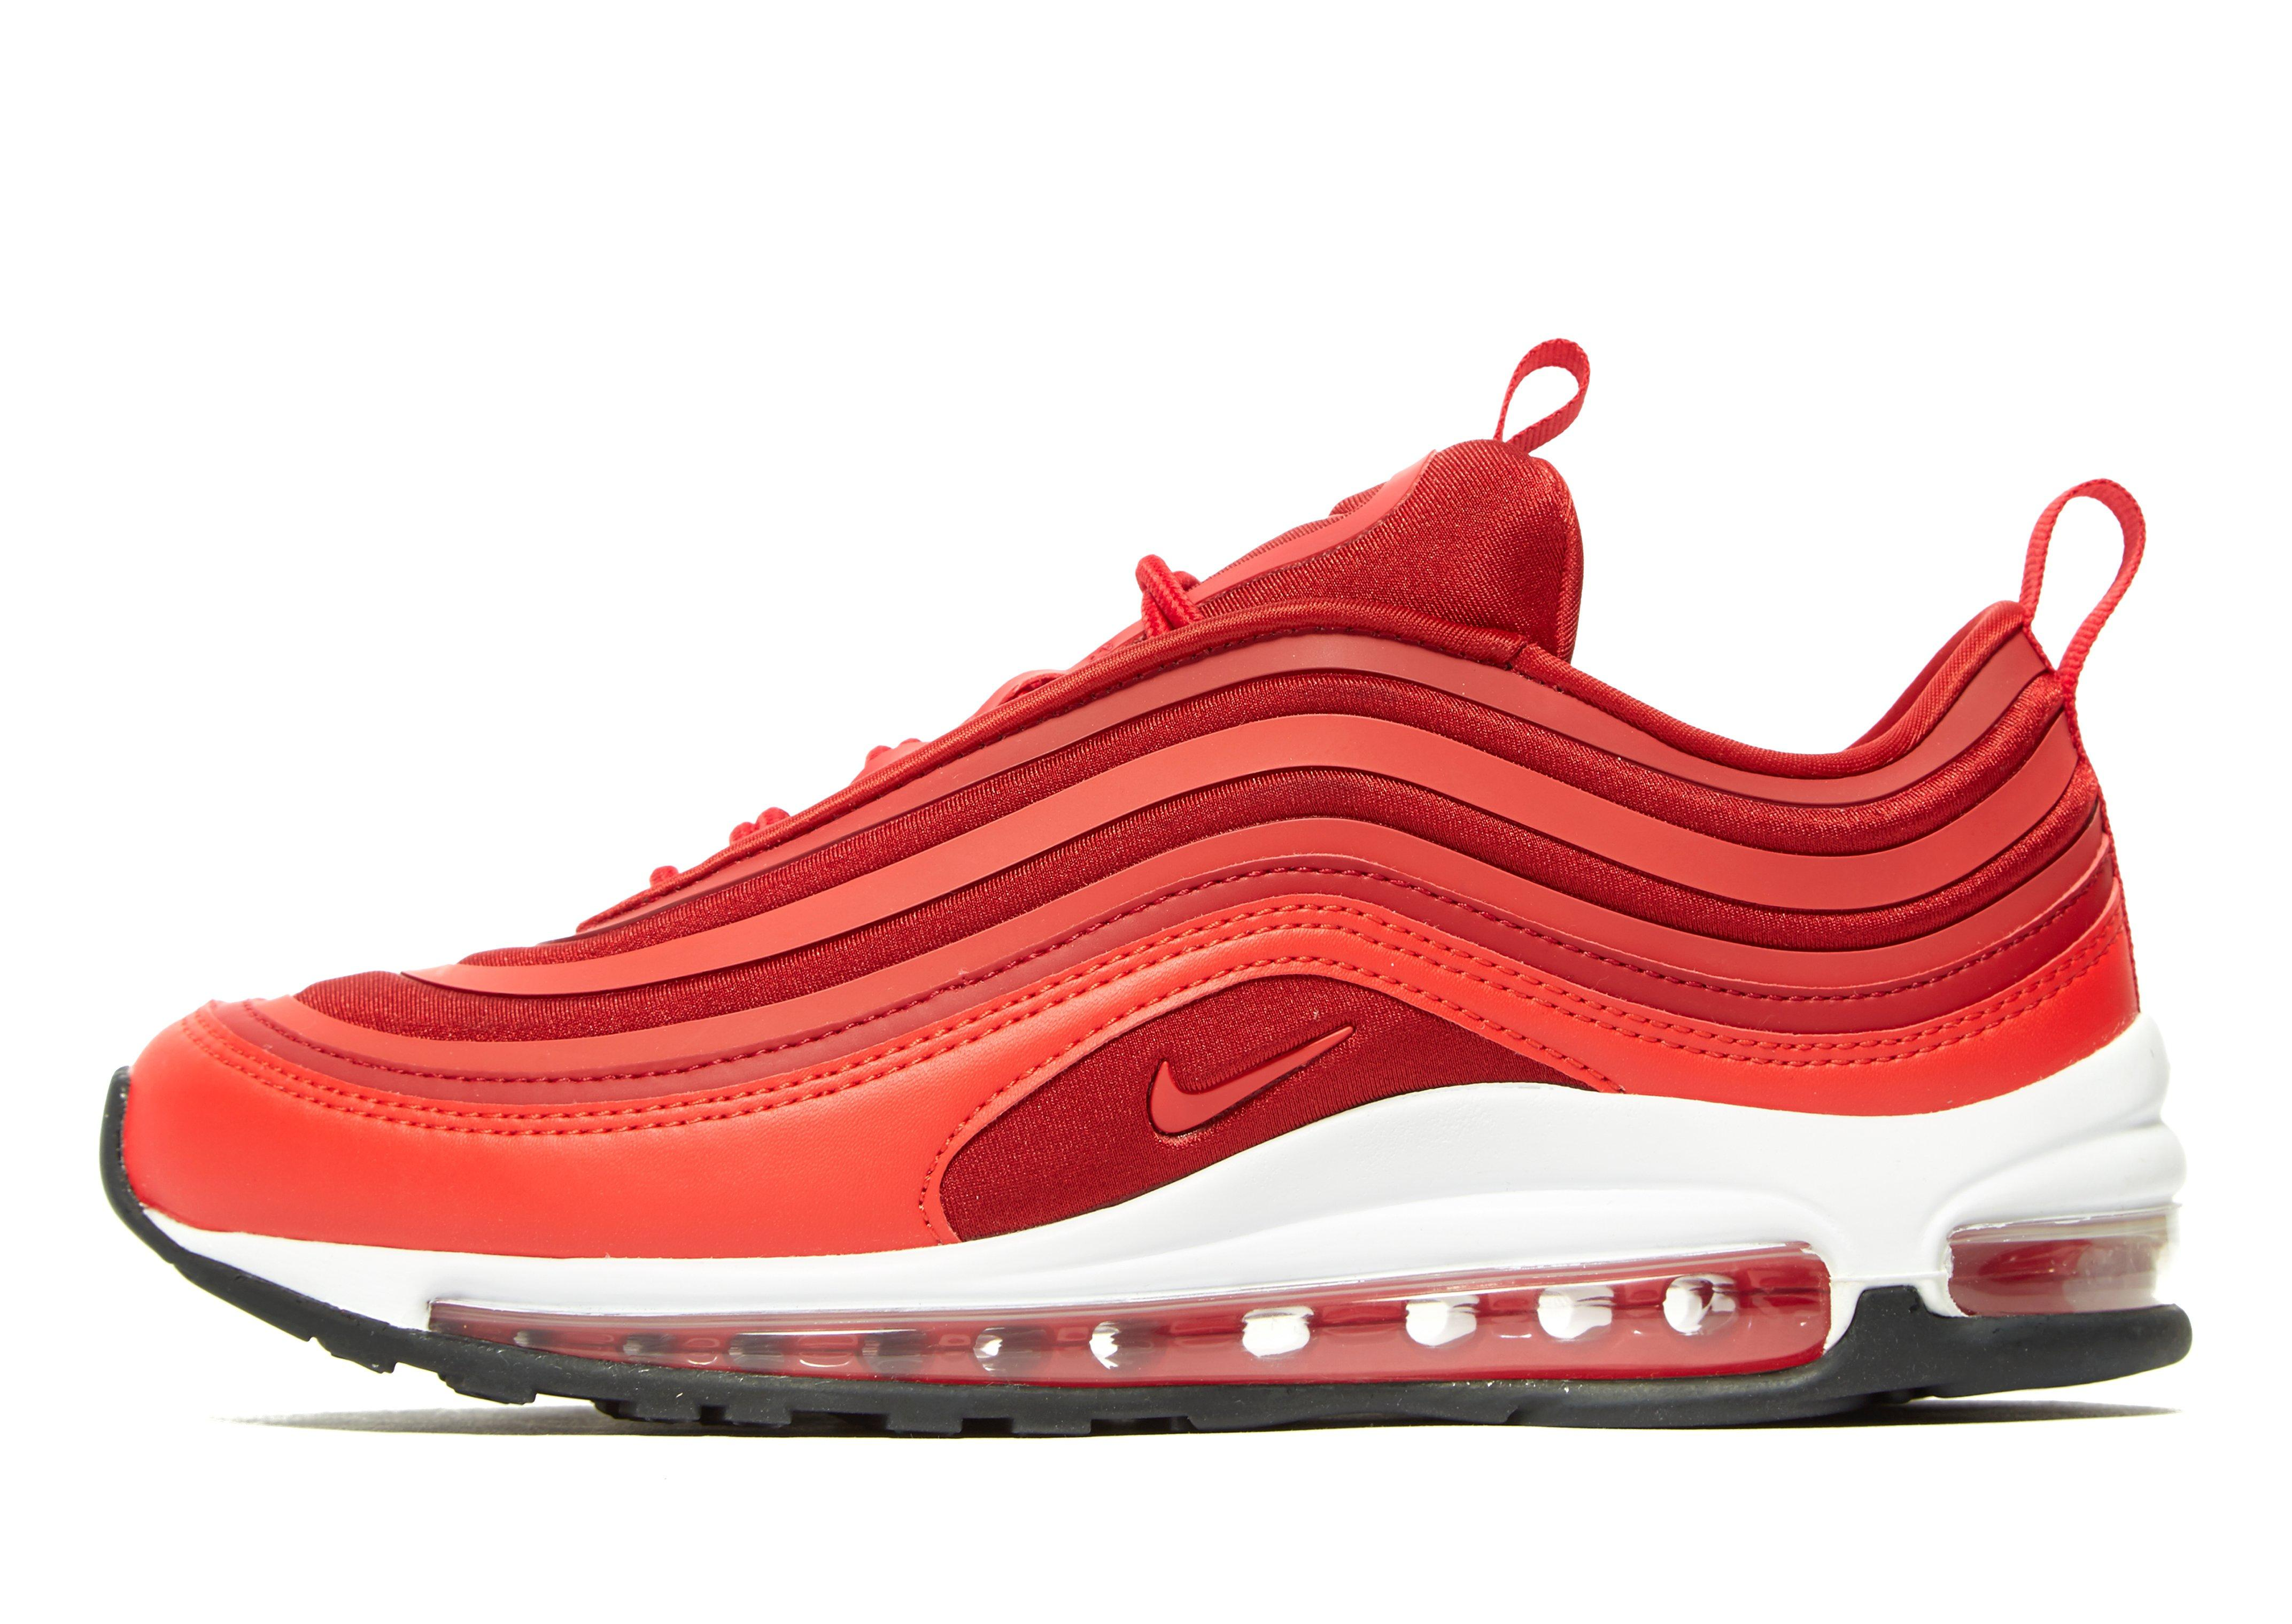 women's red nike air max